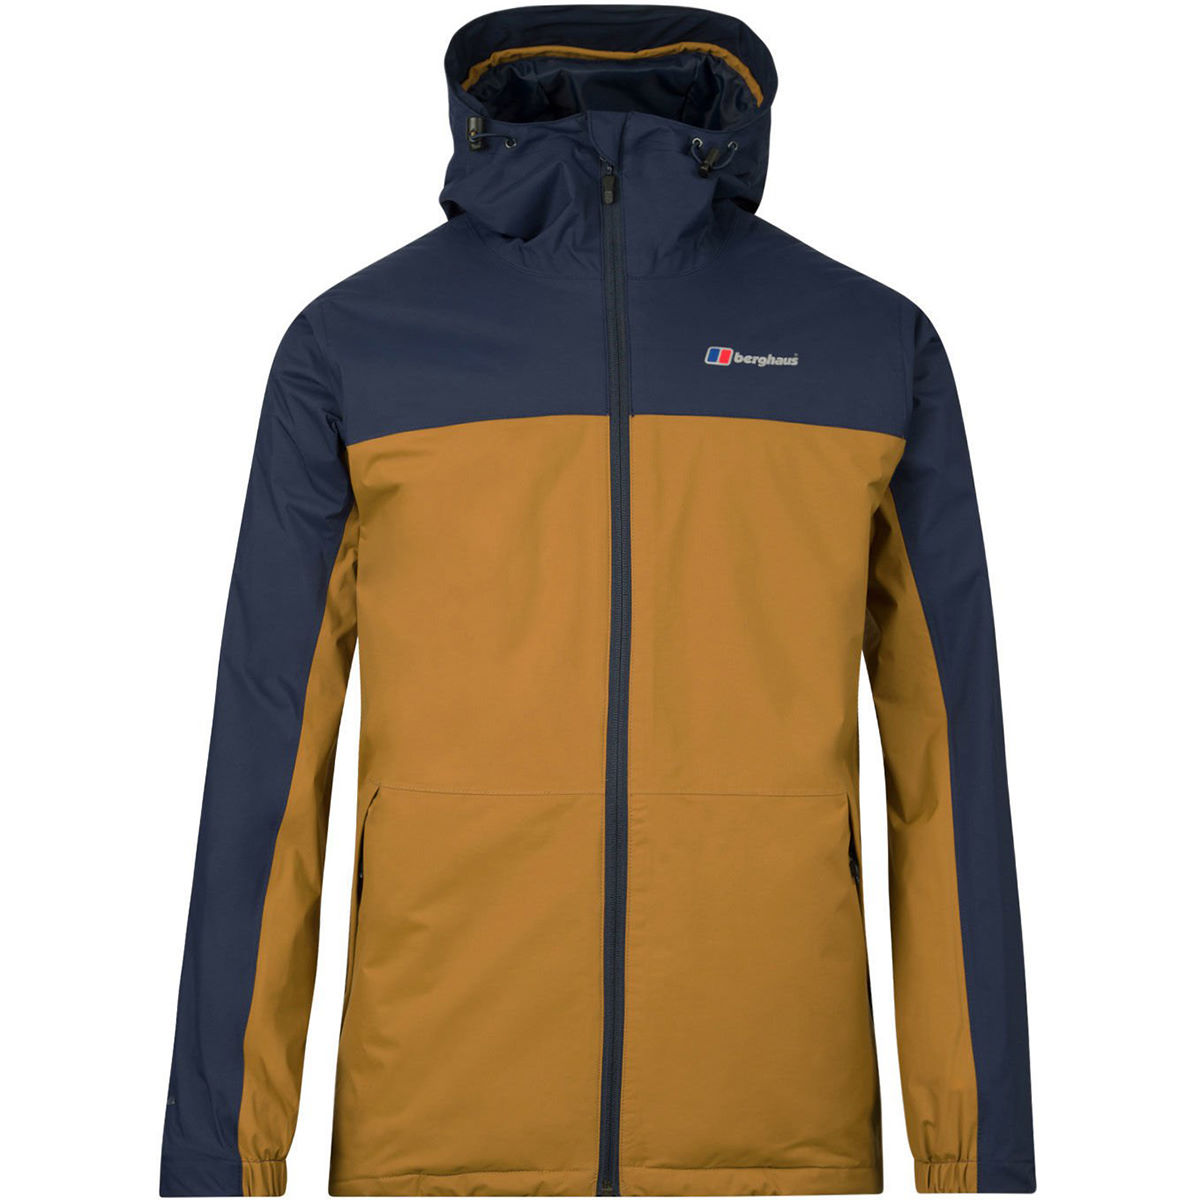 Berghaus Deluge Pro Insulated Jacket - Chaquetas